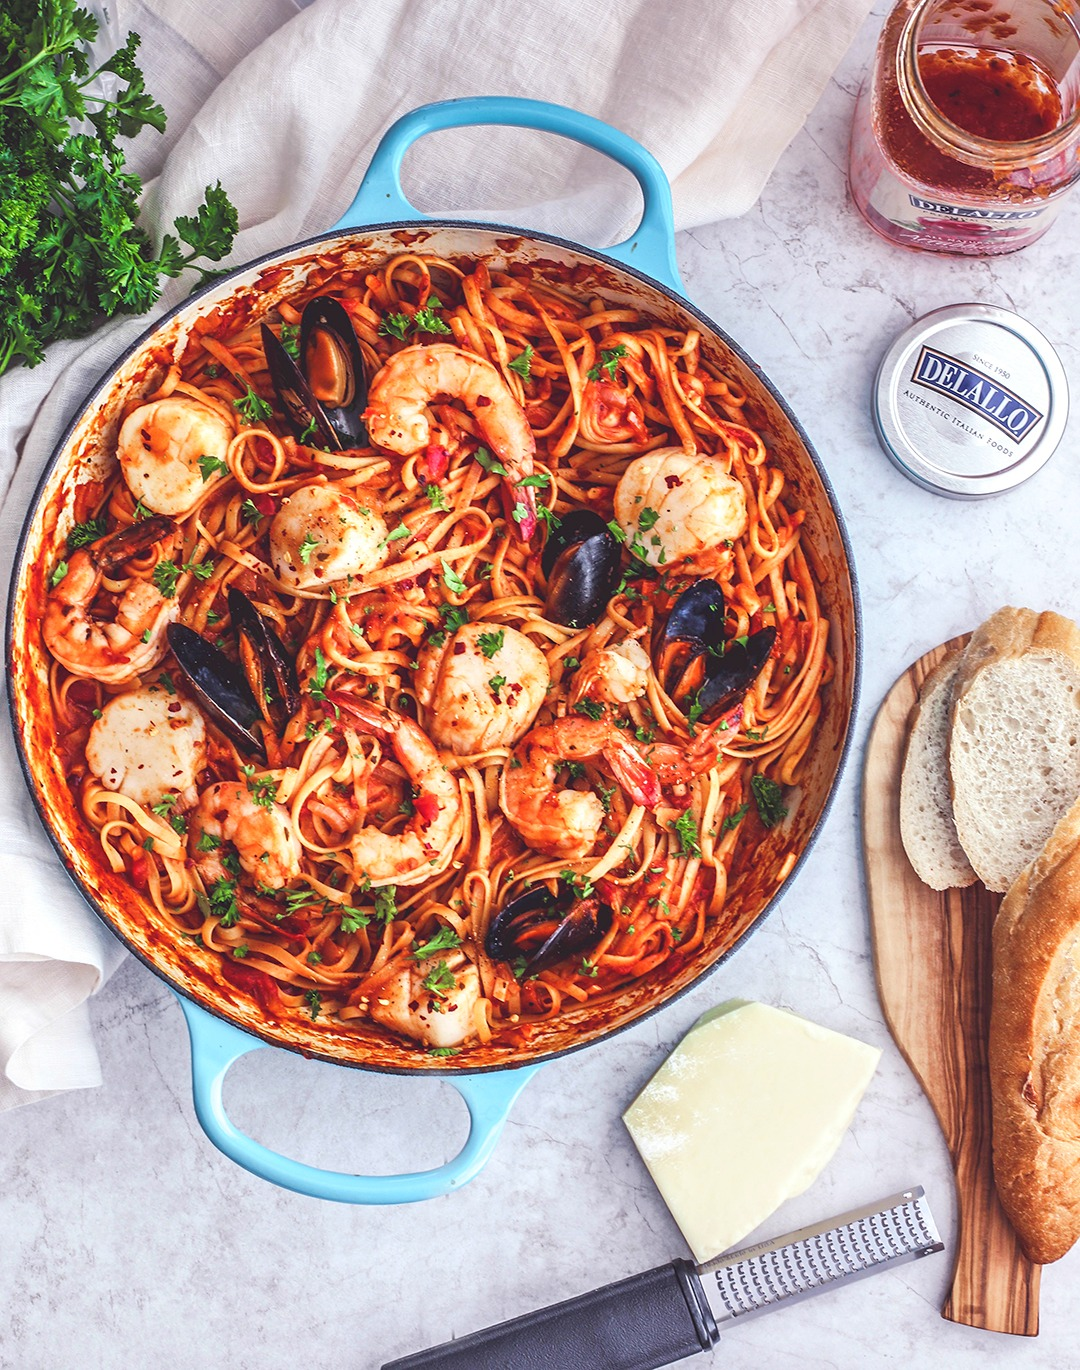 Fiery One-Pot Seafood Pasta With Arrabbiata Sauce | Killing Thyme